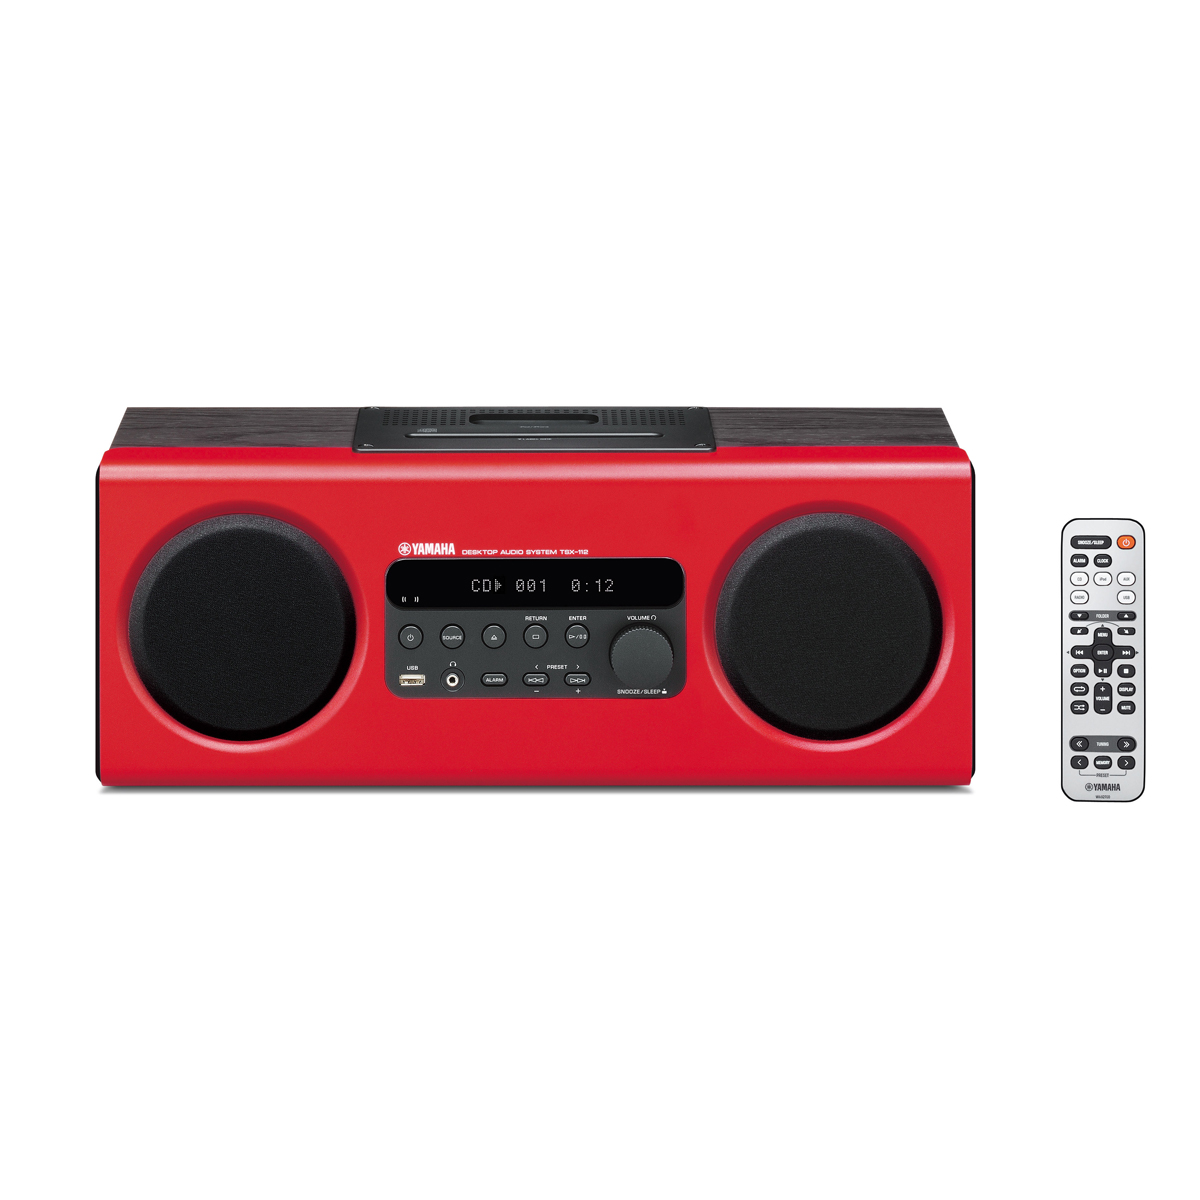 mini hifi radios yamaha tsx 112 red desktop hifi usb radio alarm clock cd line in iphone. Black Bedroom Furniture Sets. Home Design Ideas